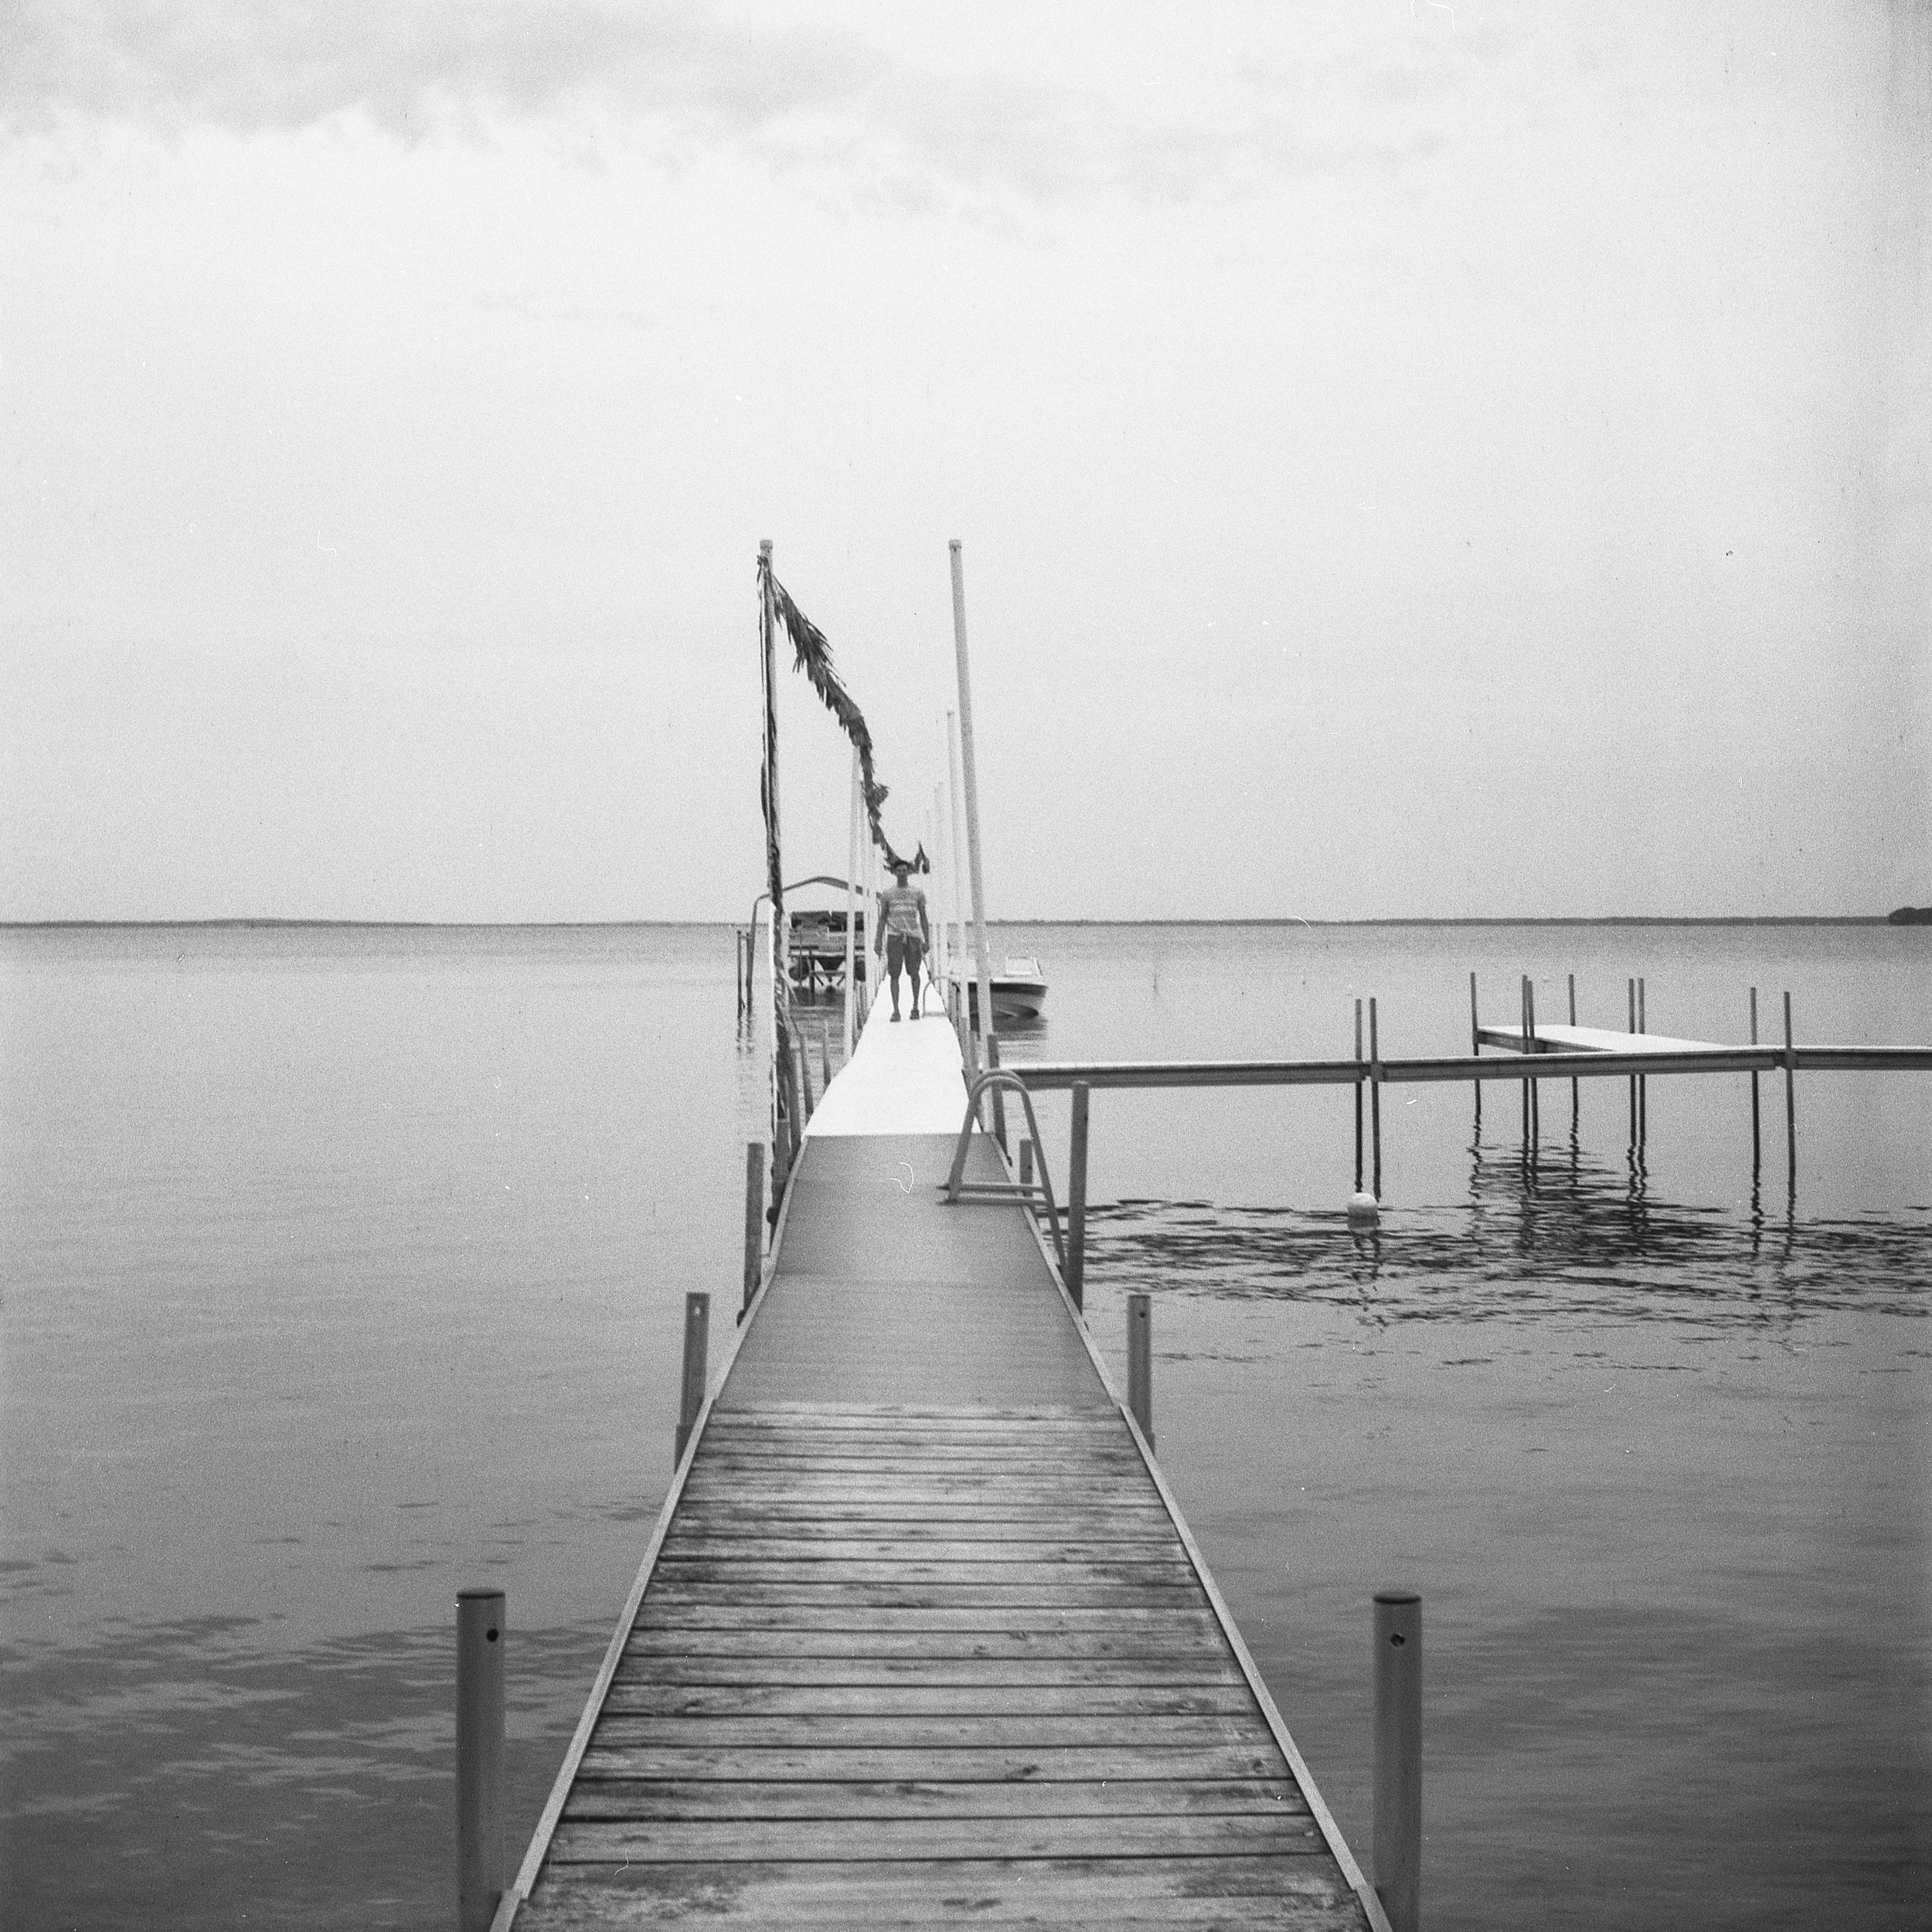 1949 Kodak Brownie Hawkeye Photo Medium Format 620 Film Zoe Kissel Photo houghton lake michigan